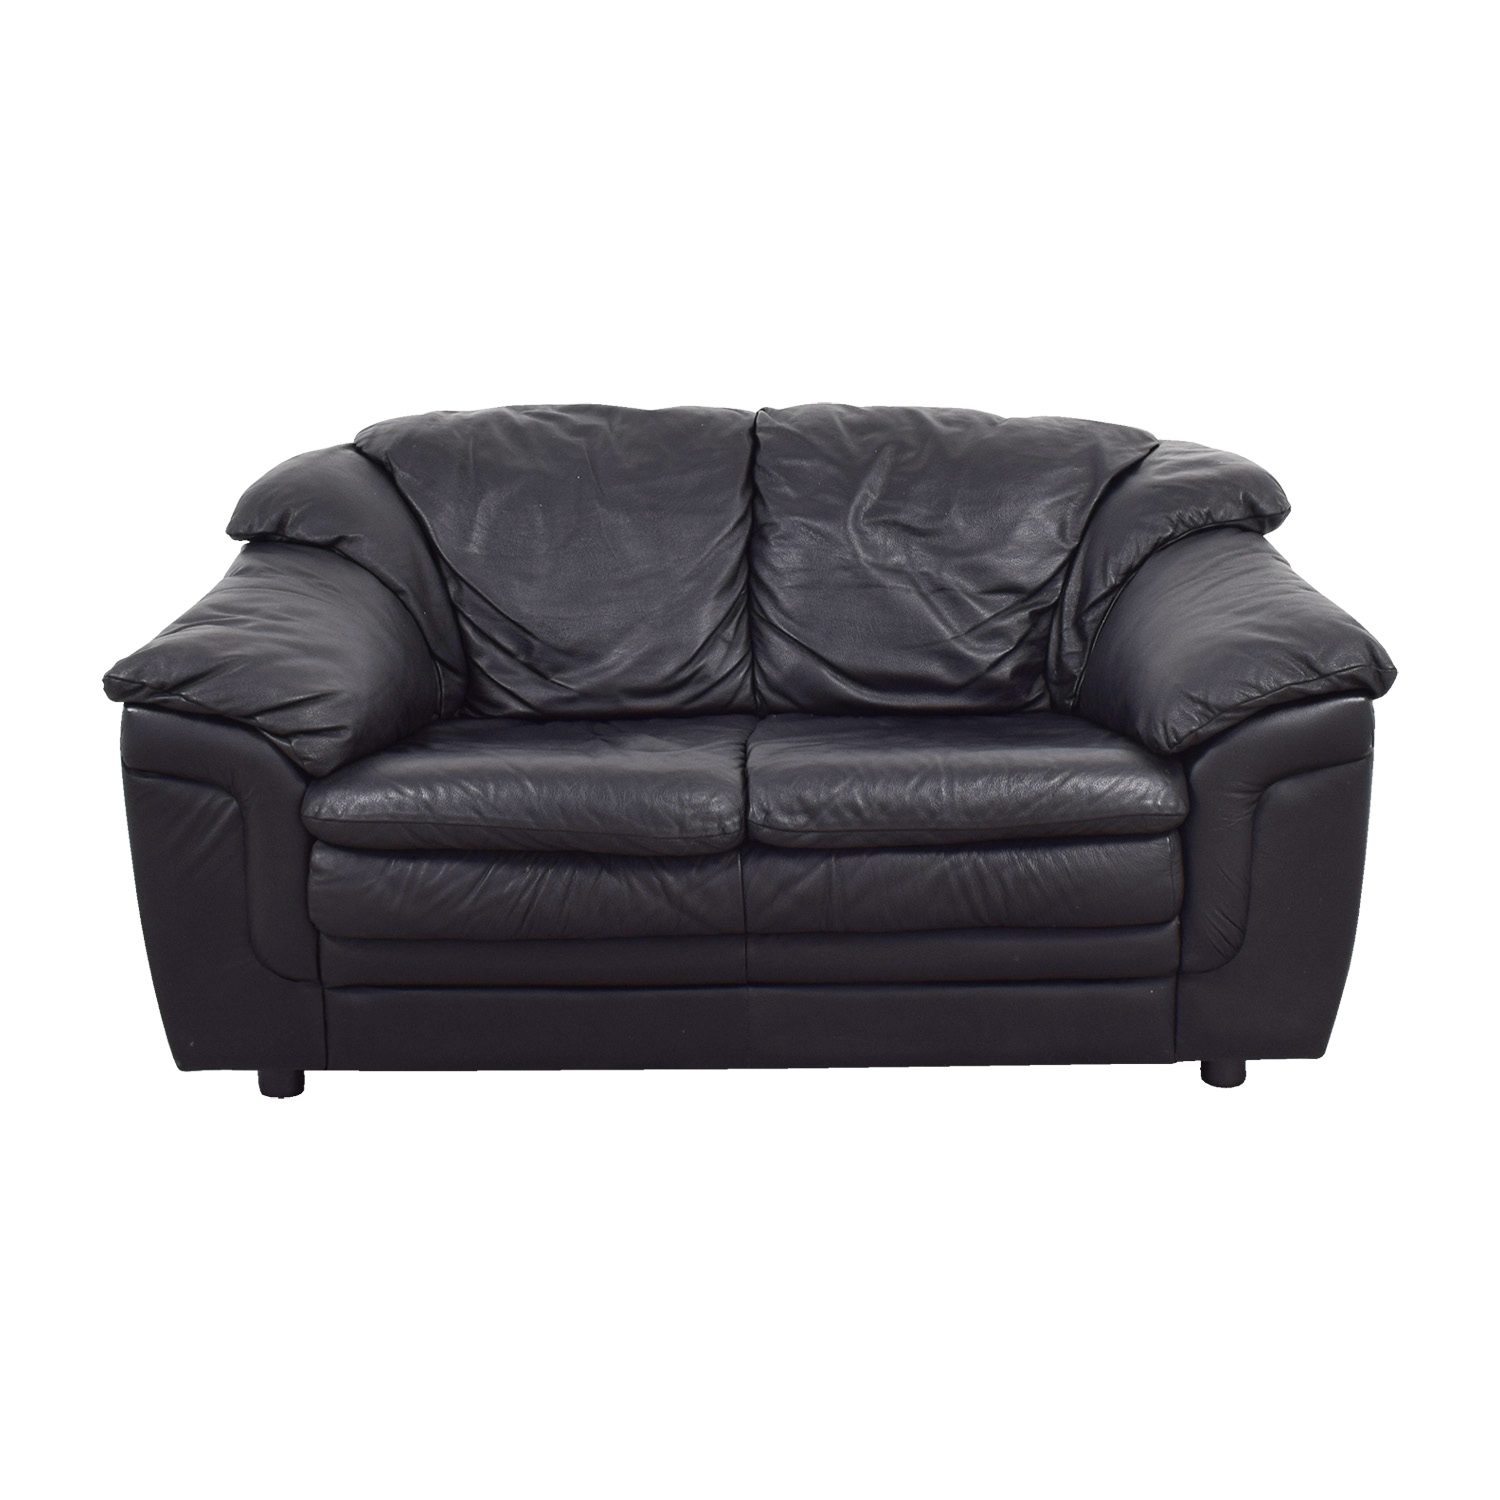 shop Jennifer Leather Black Italian Leather Love Seat Jennifer Leather